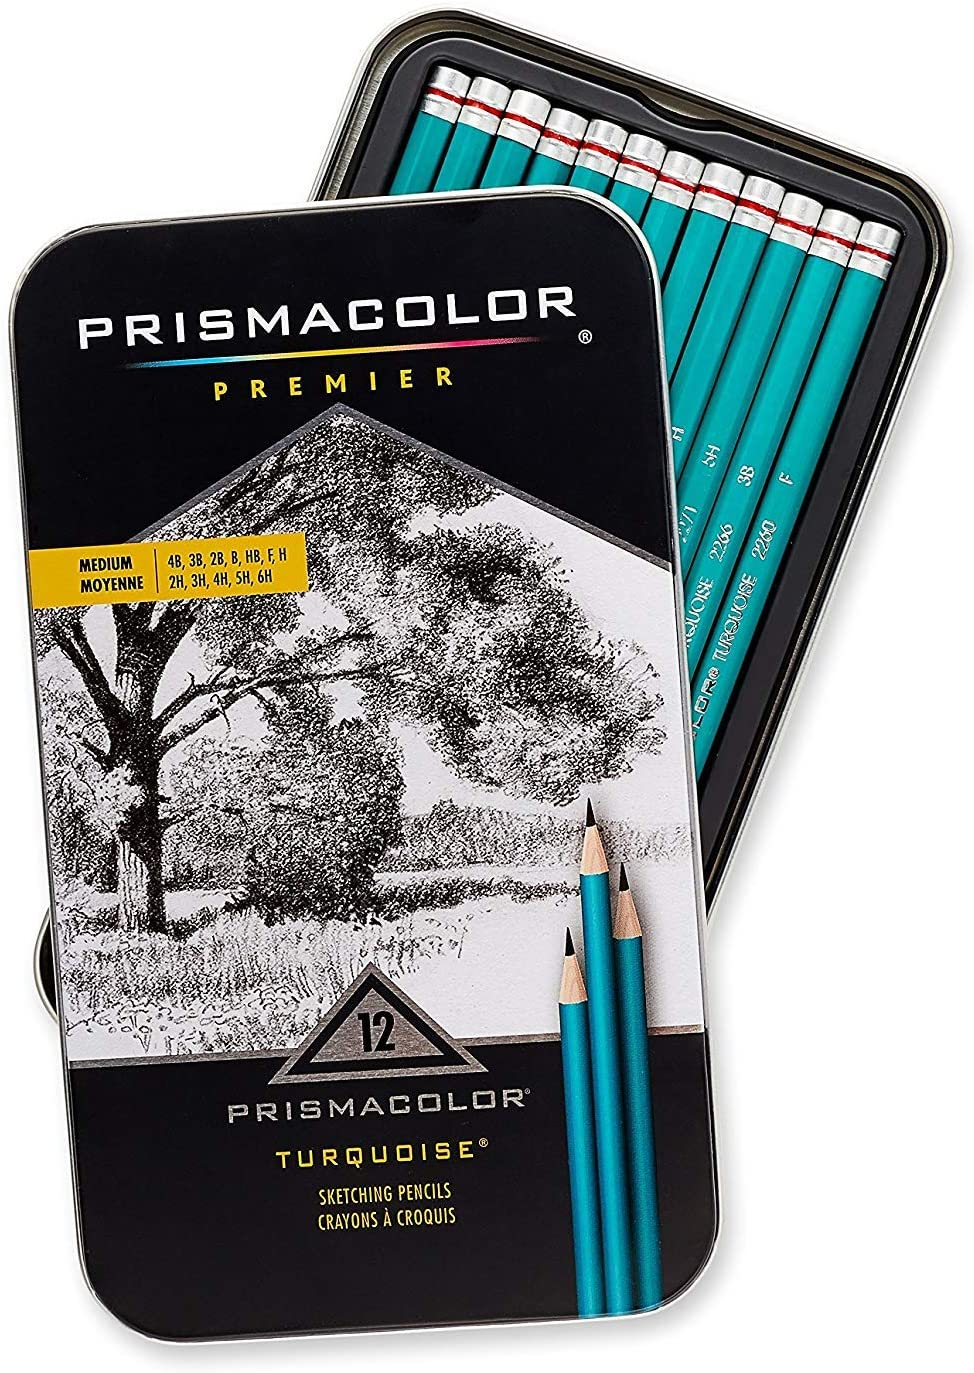 2B Prismacolor Premier Turquoise Graphite Drawing Pencil